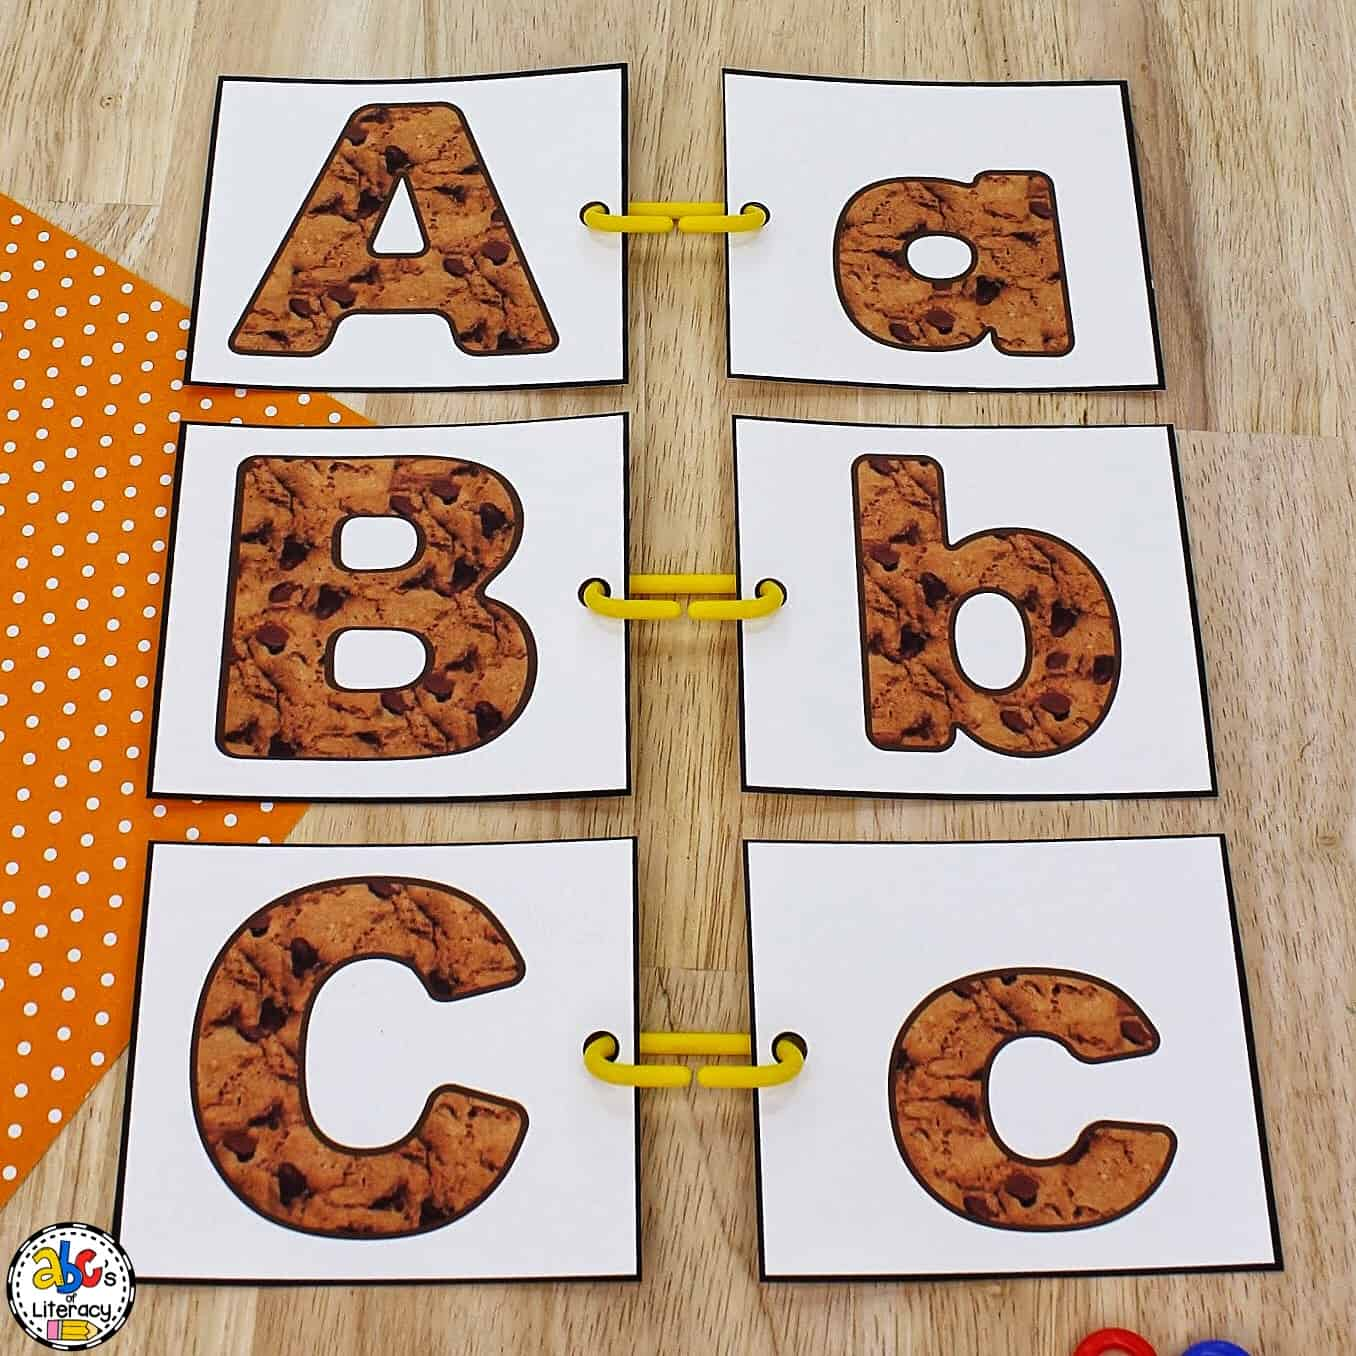 Learning the ABC's